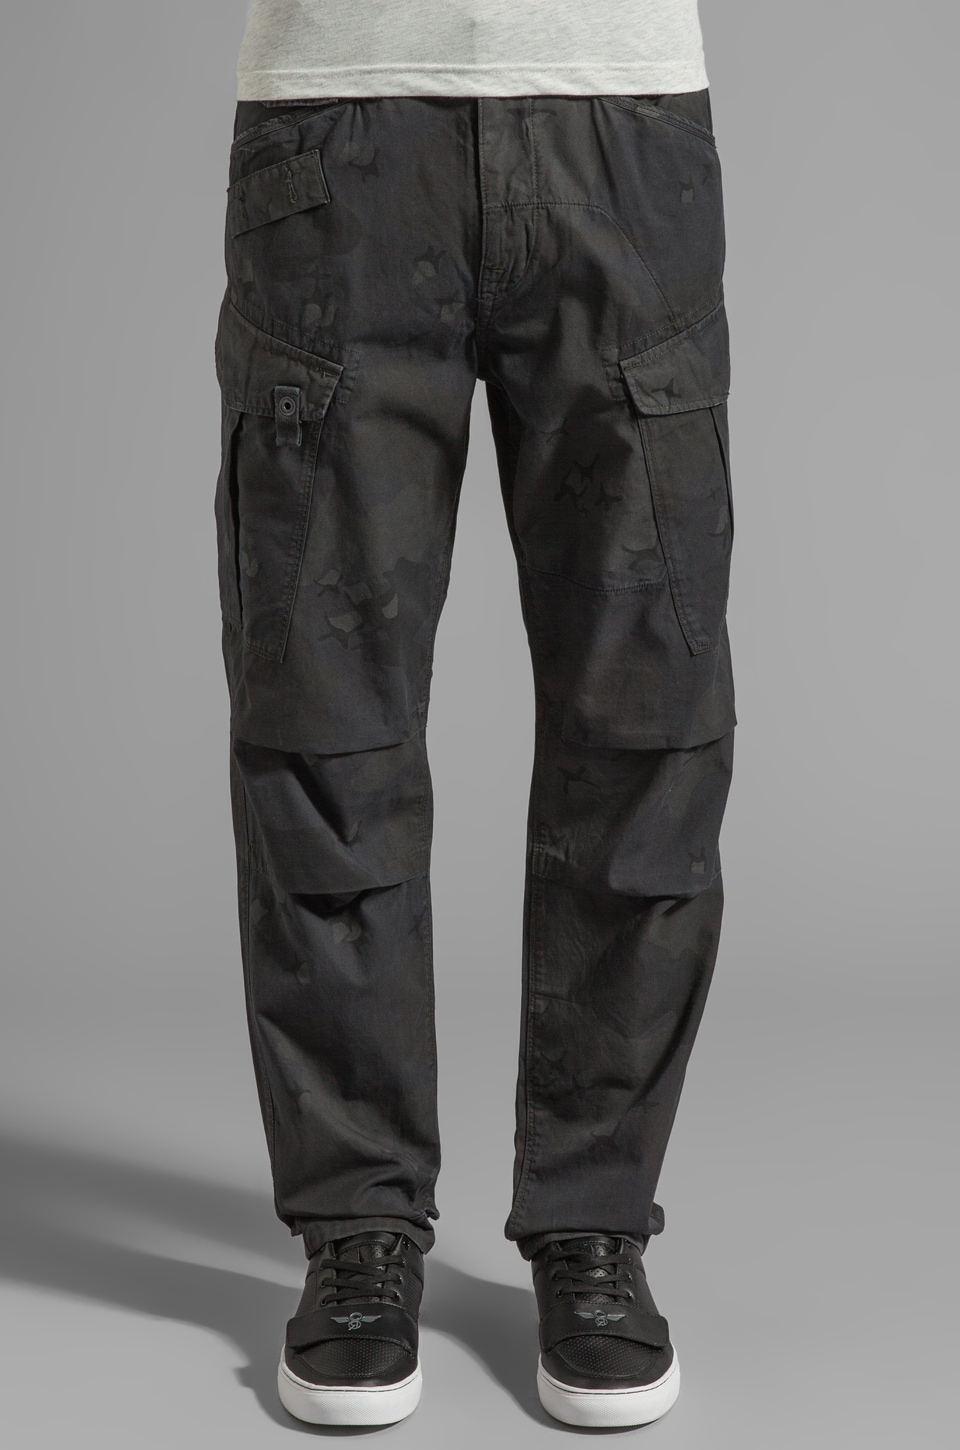 G-Star Rovic Camo Tapered Pant in MDF